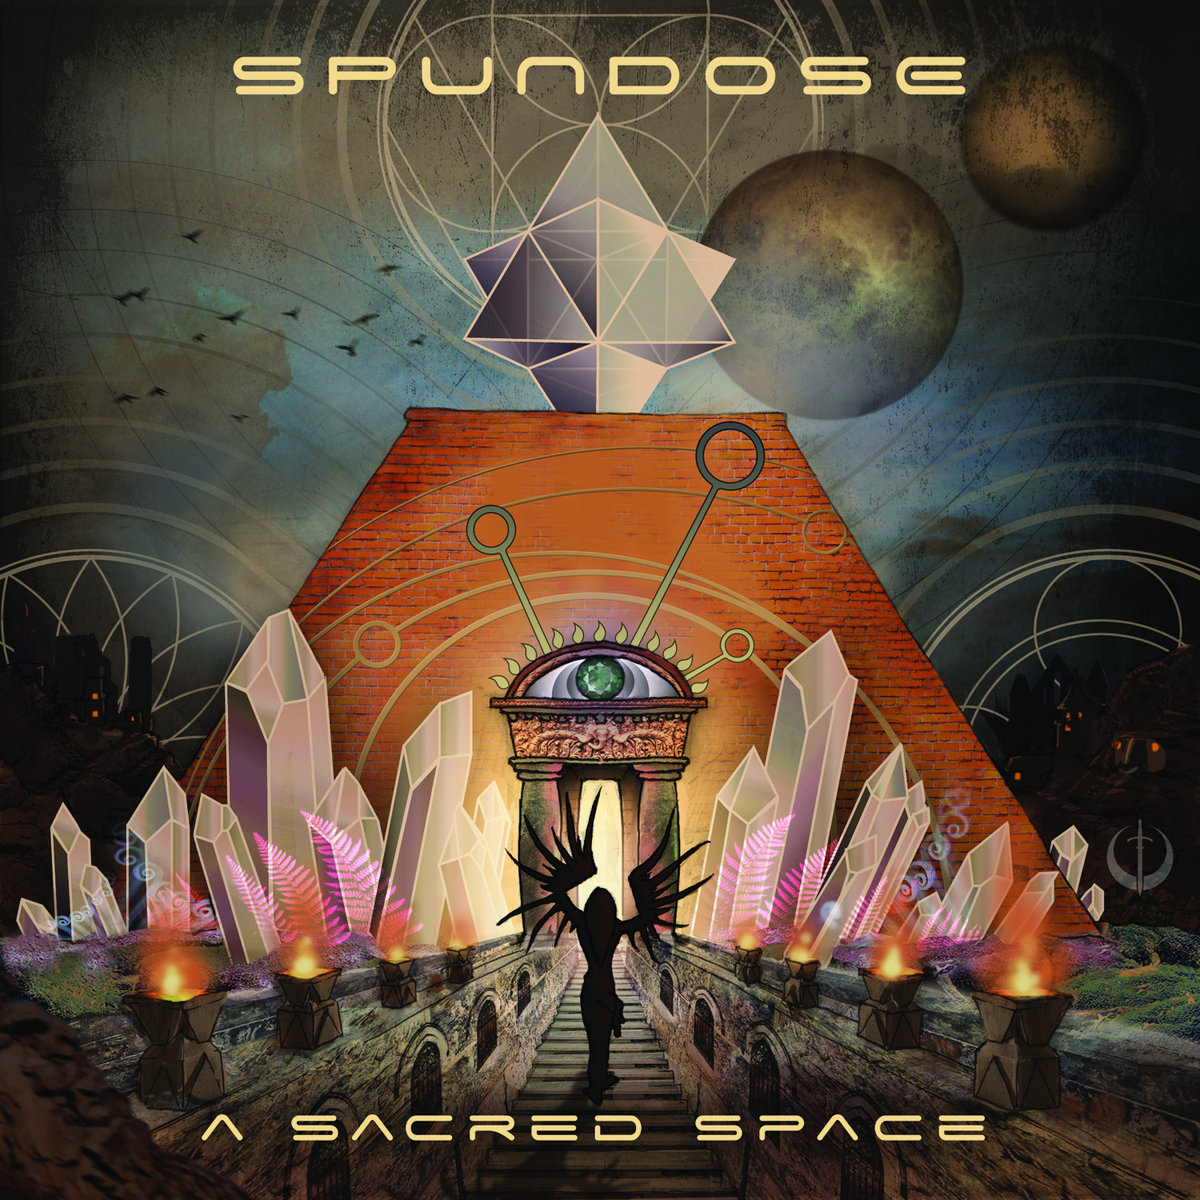 Spundose - Urban Shaman @ 'A Sacred Space' album (bass, electronic)